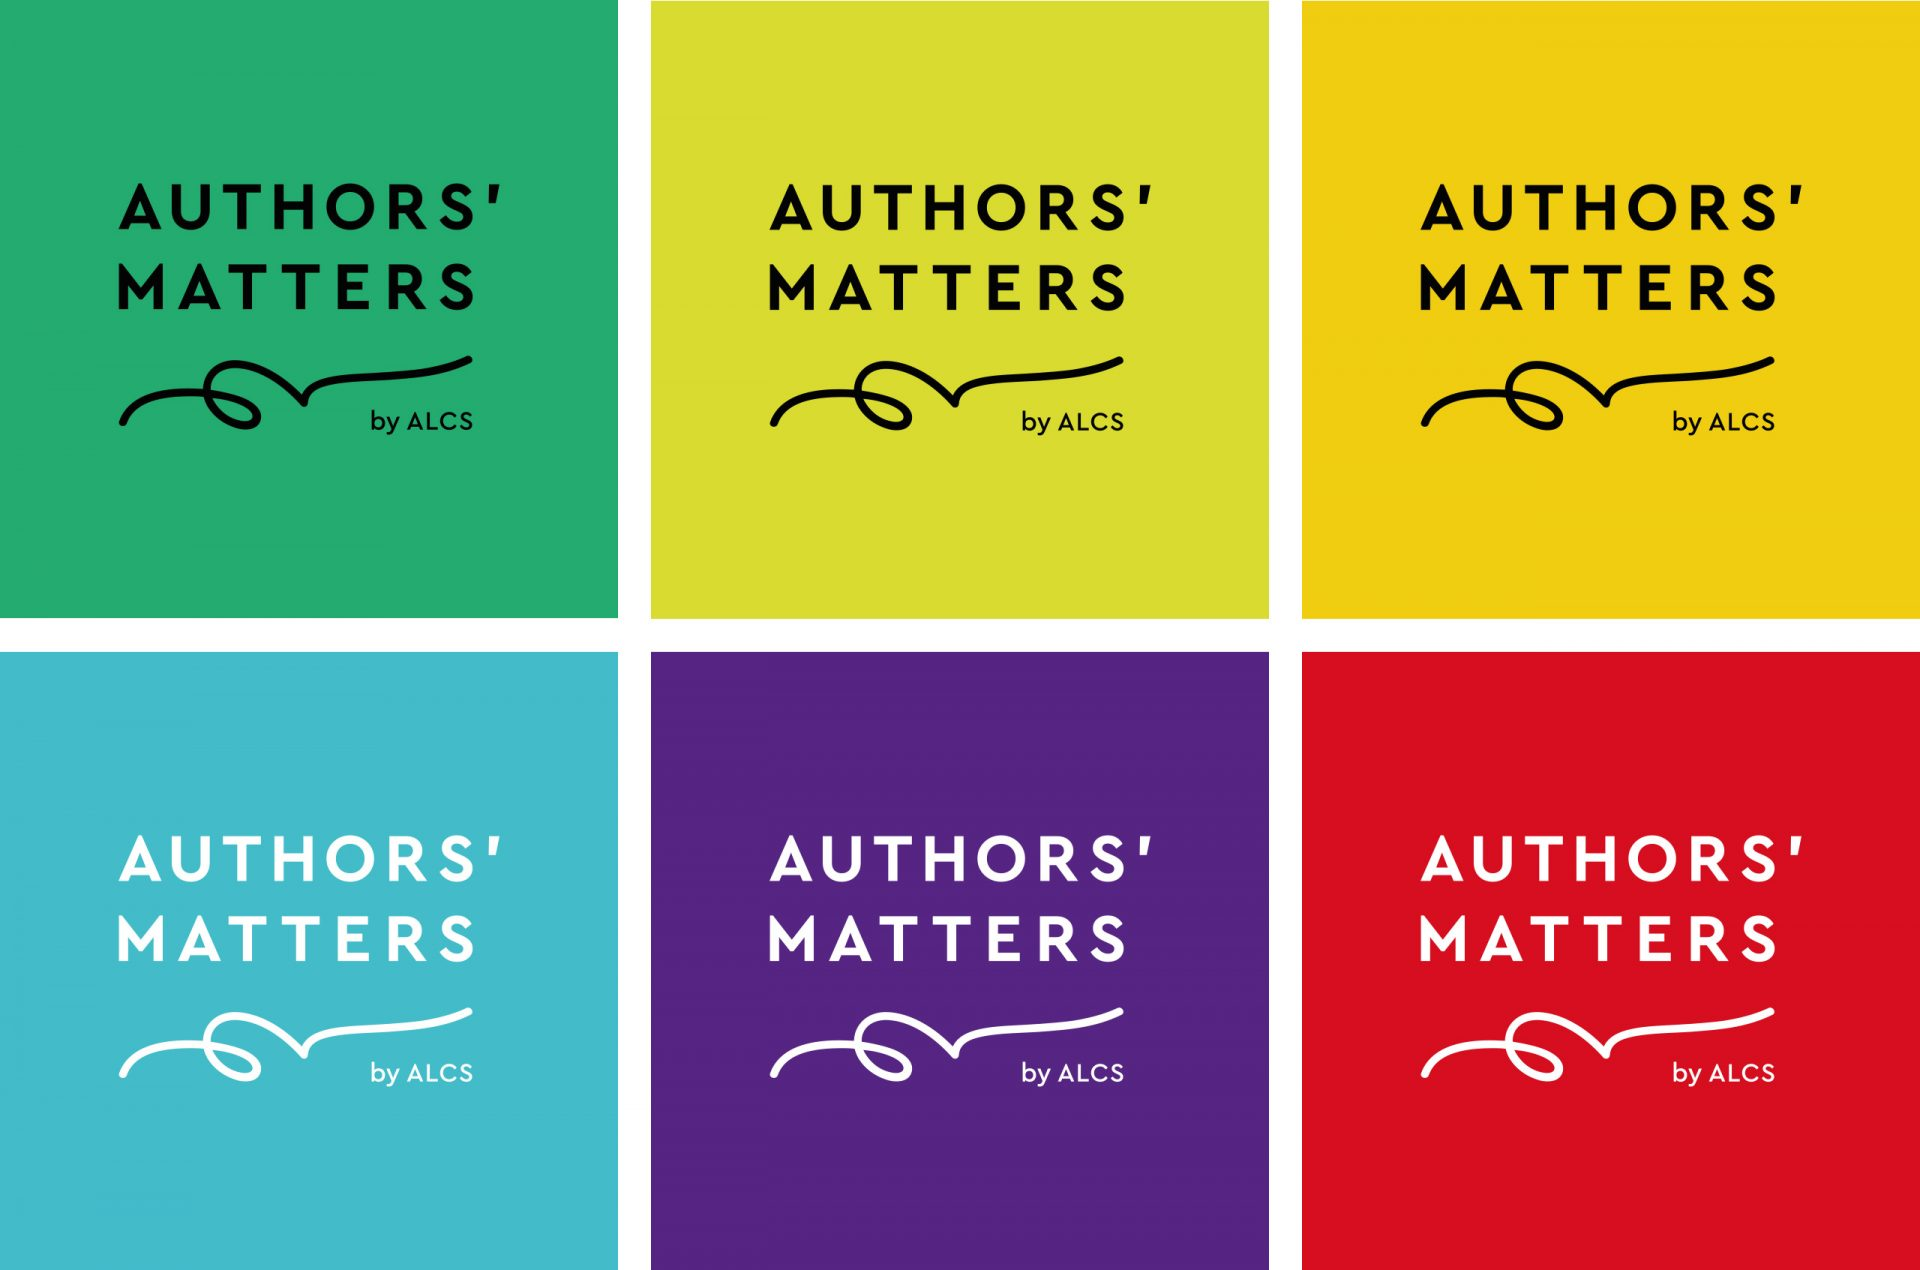 Authors' matters